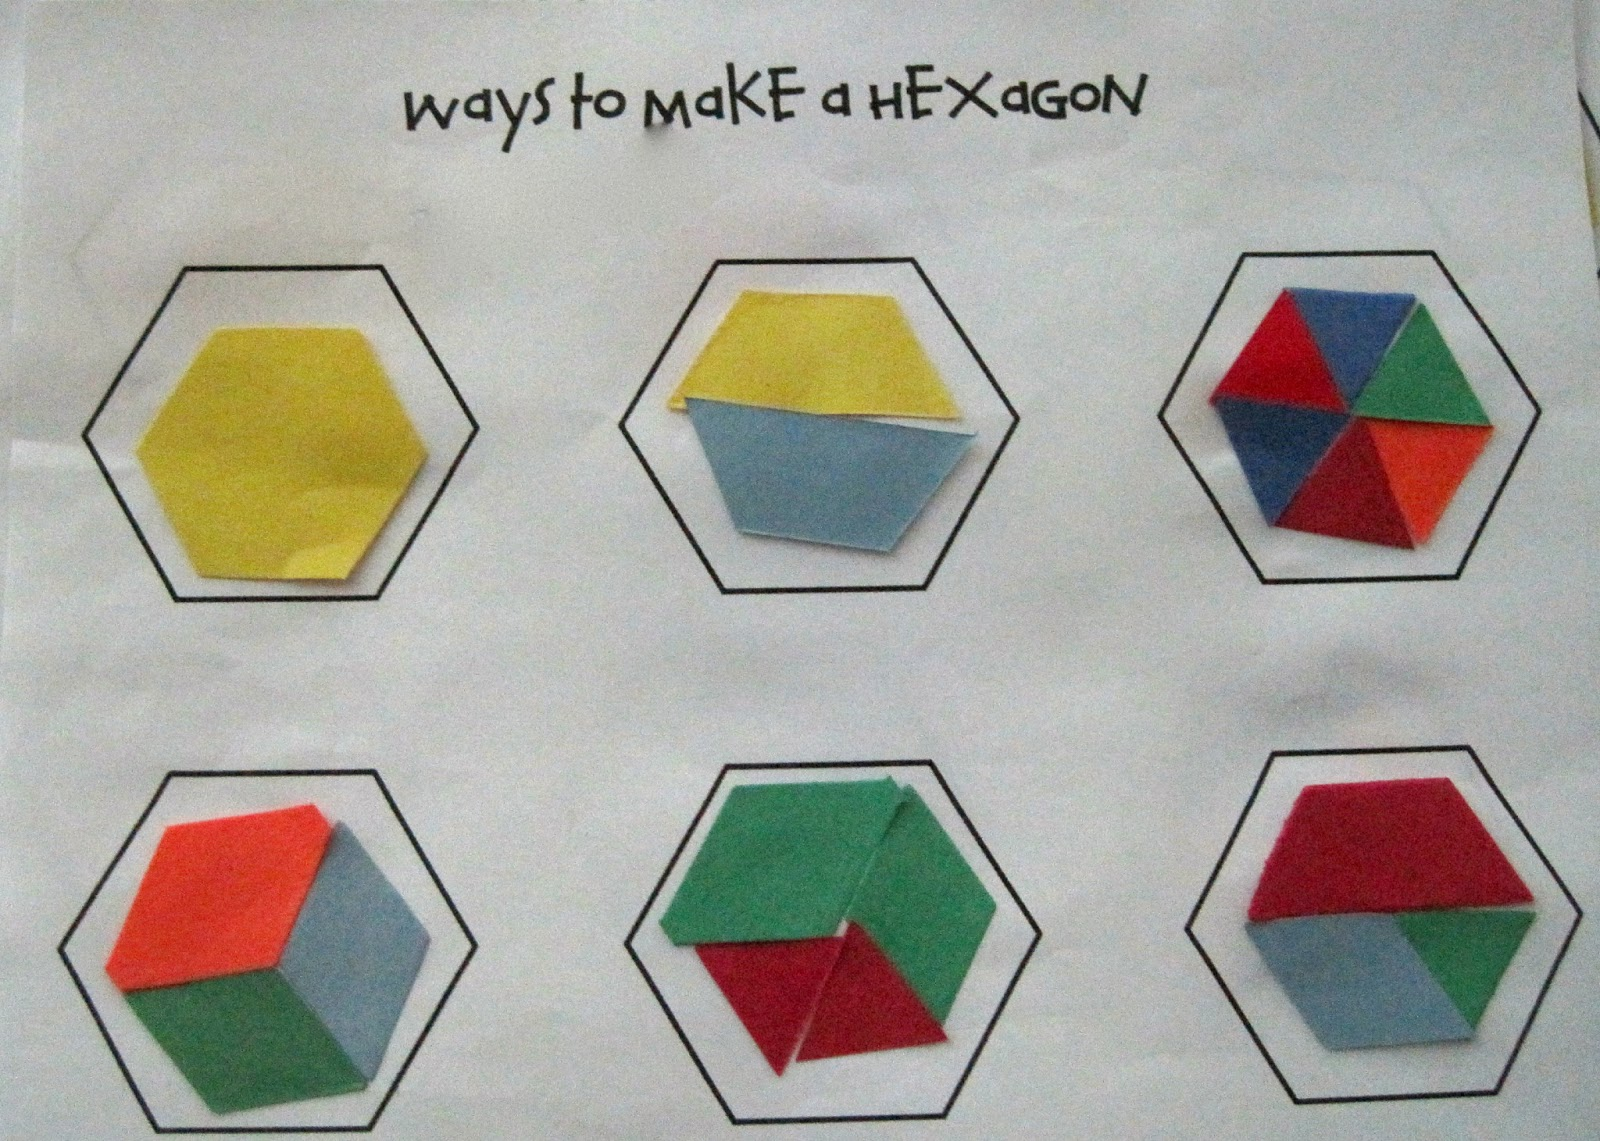 Kindergarten SuperKids: Ways to Make a Hexagon